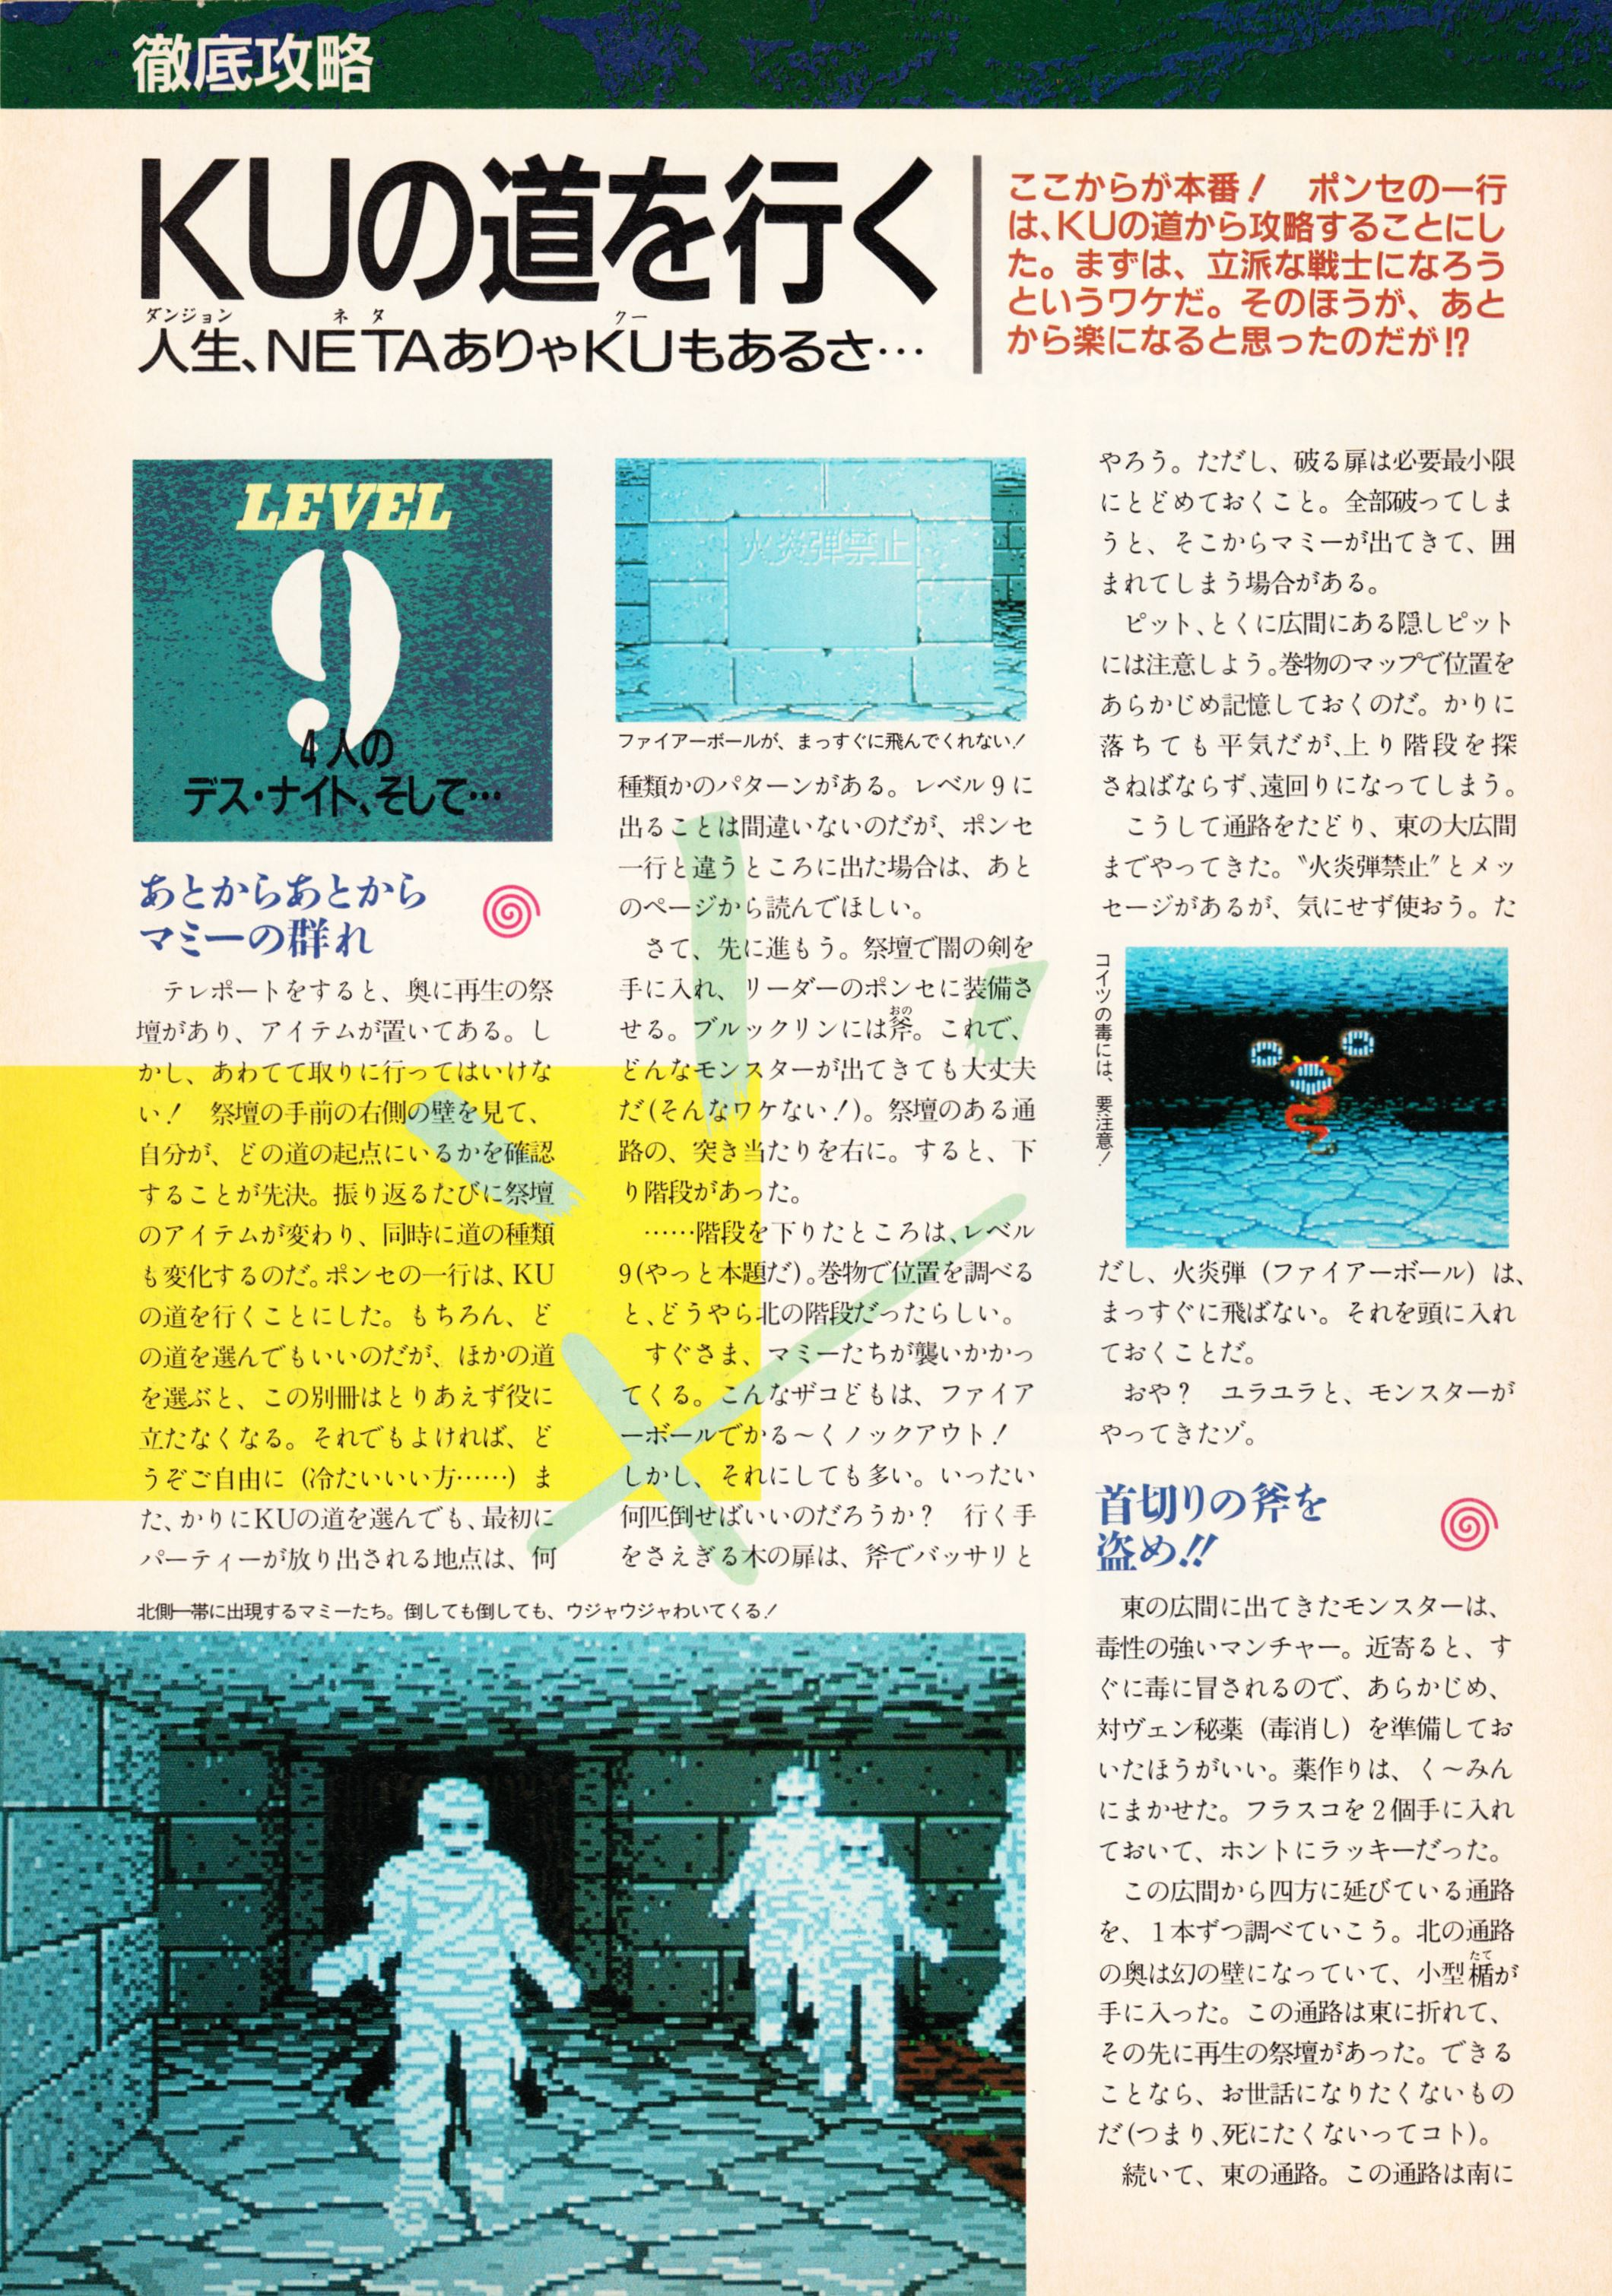 Supplement 1 - Chaos Strikes Back Companion Guide Guide published in Japanese magazine 'Popcom', Vol 9 No 2 01 February 1991, Page 8